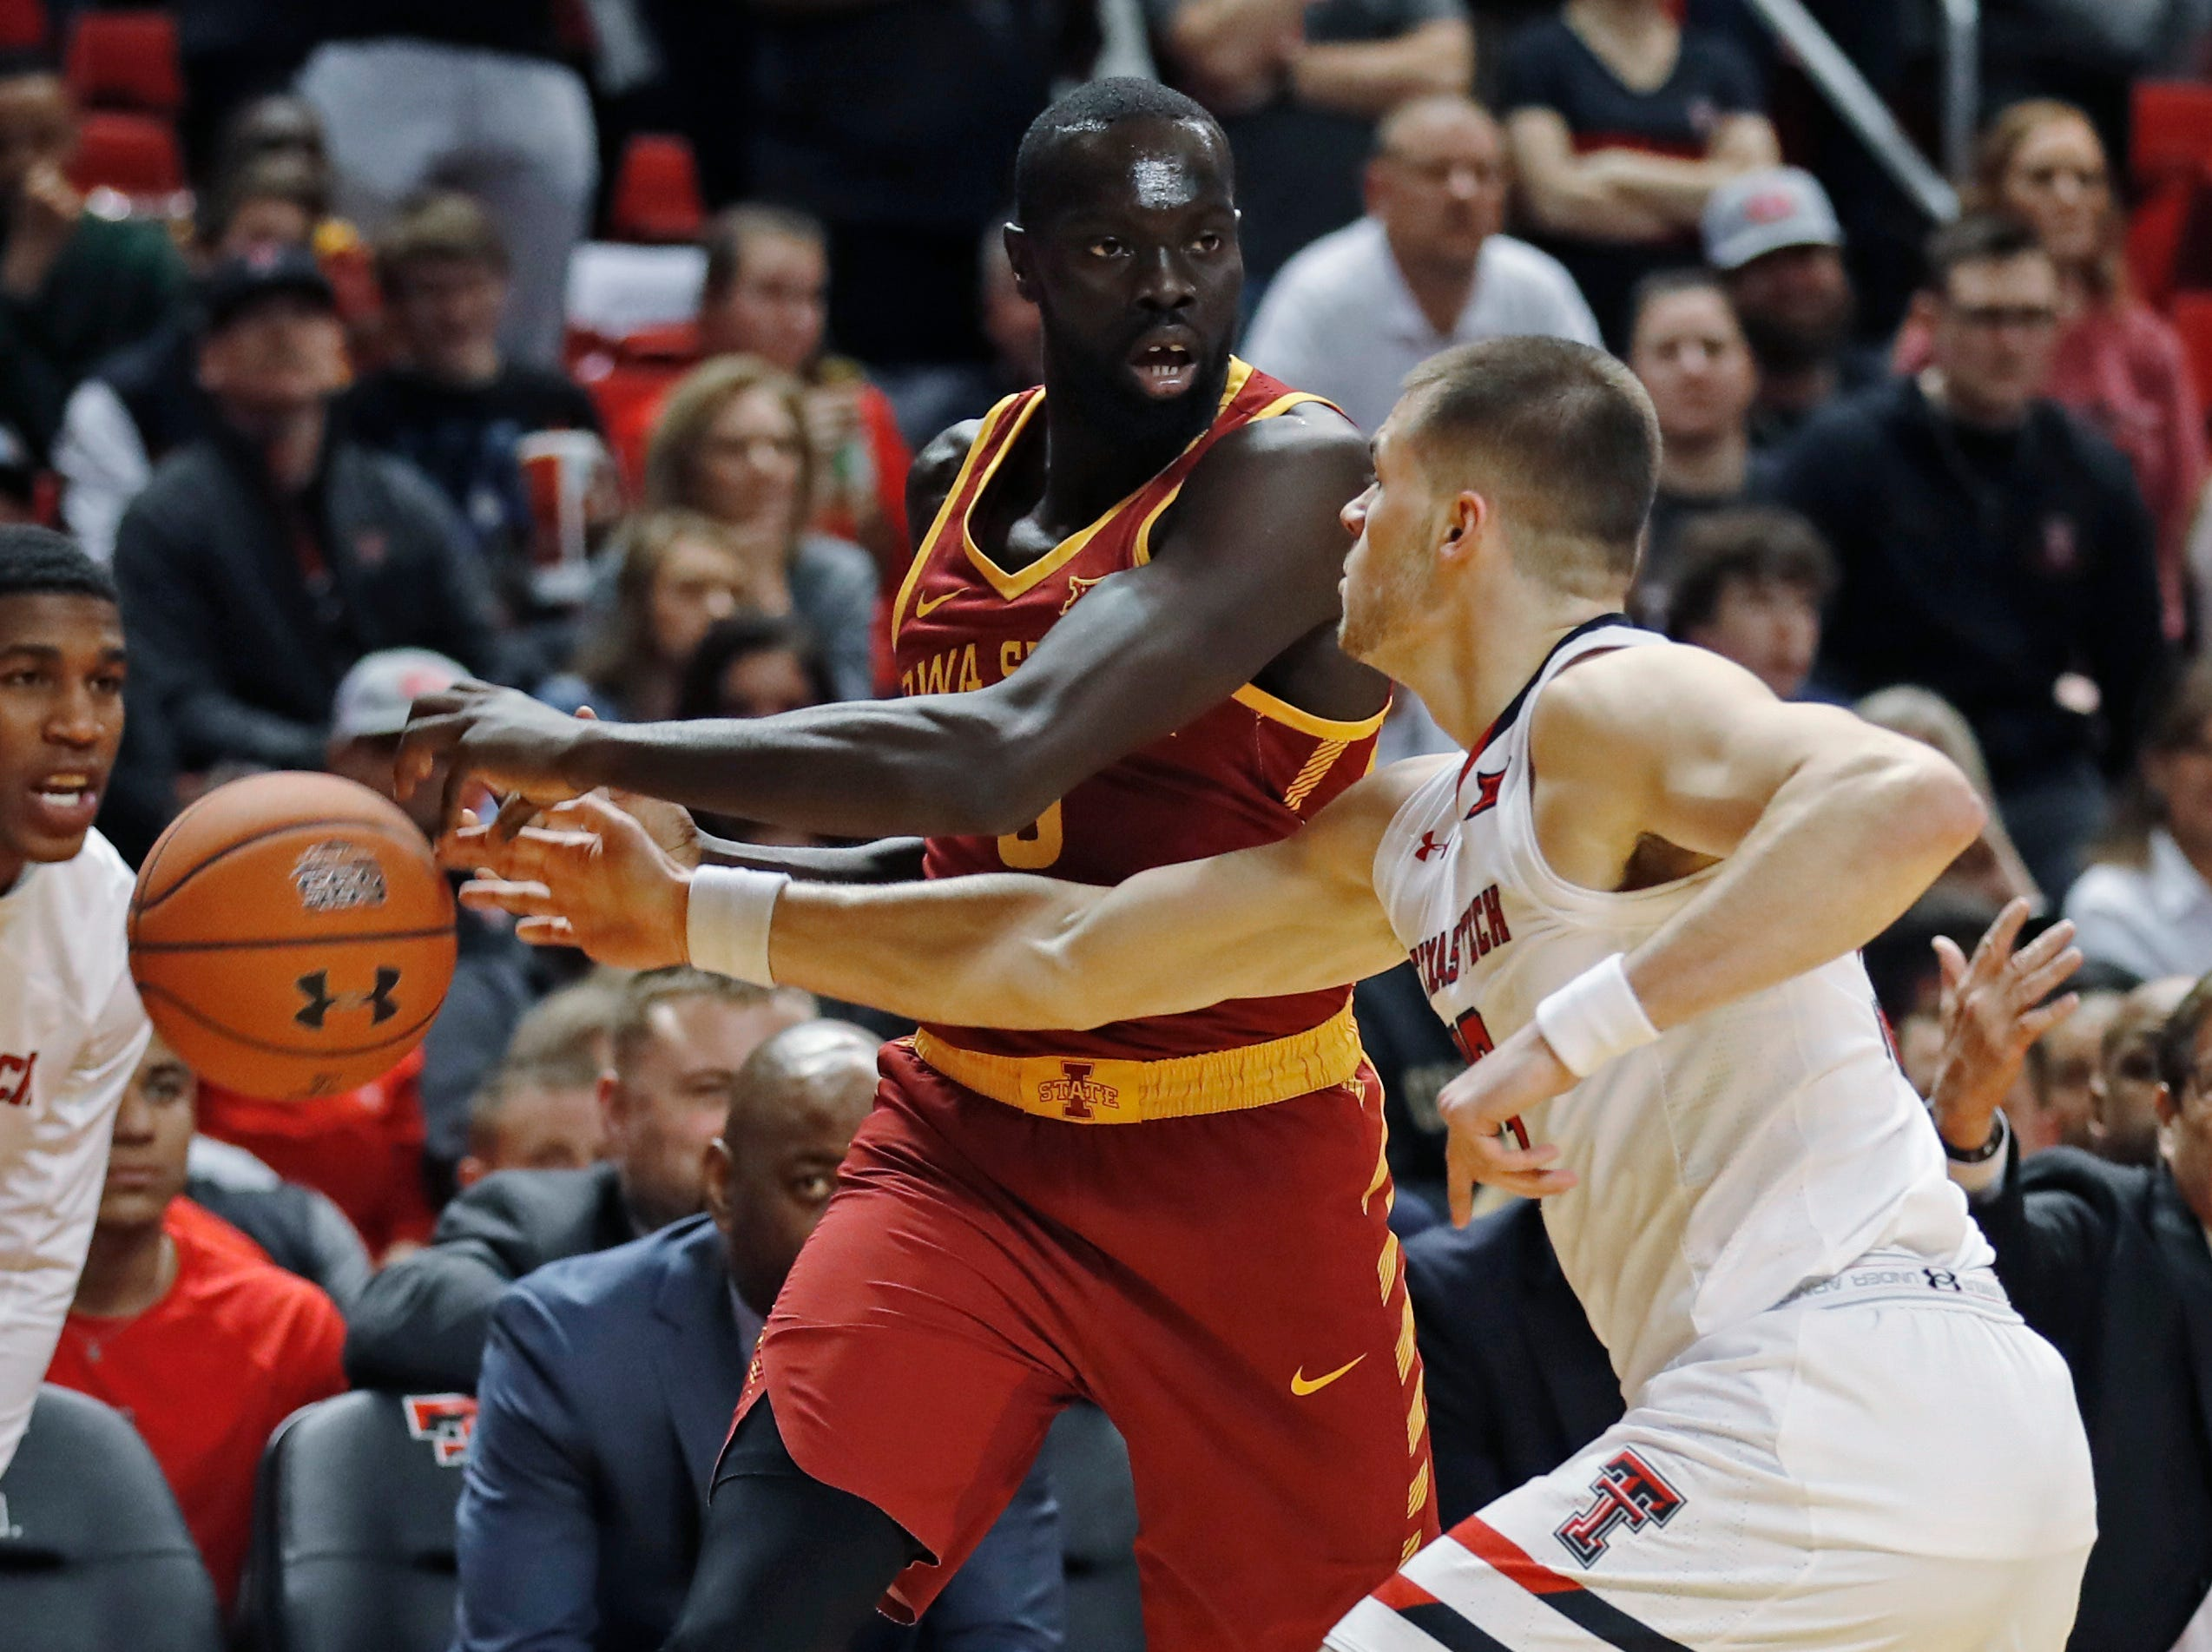 Texas Tech's Matt Mooney, right, steals the ball away from Iowa State's Marial Shayok during the first half of an NCAA college basketball game Wednesday, Jan. 16, 2019, in Lubbock, Texas.